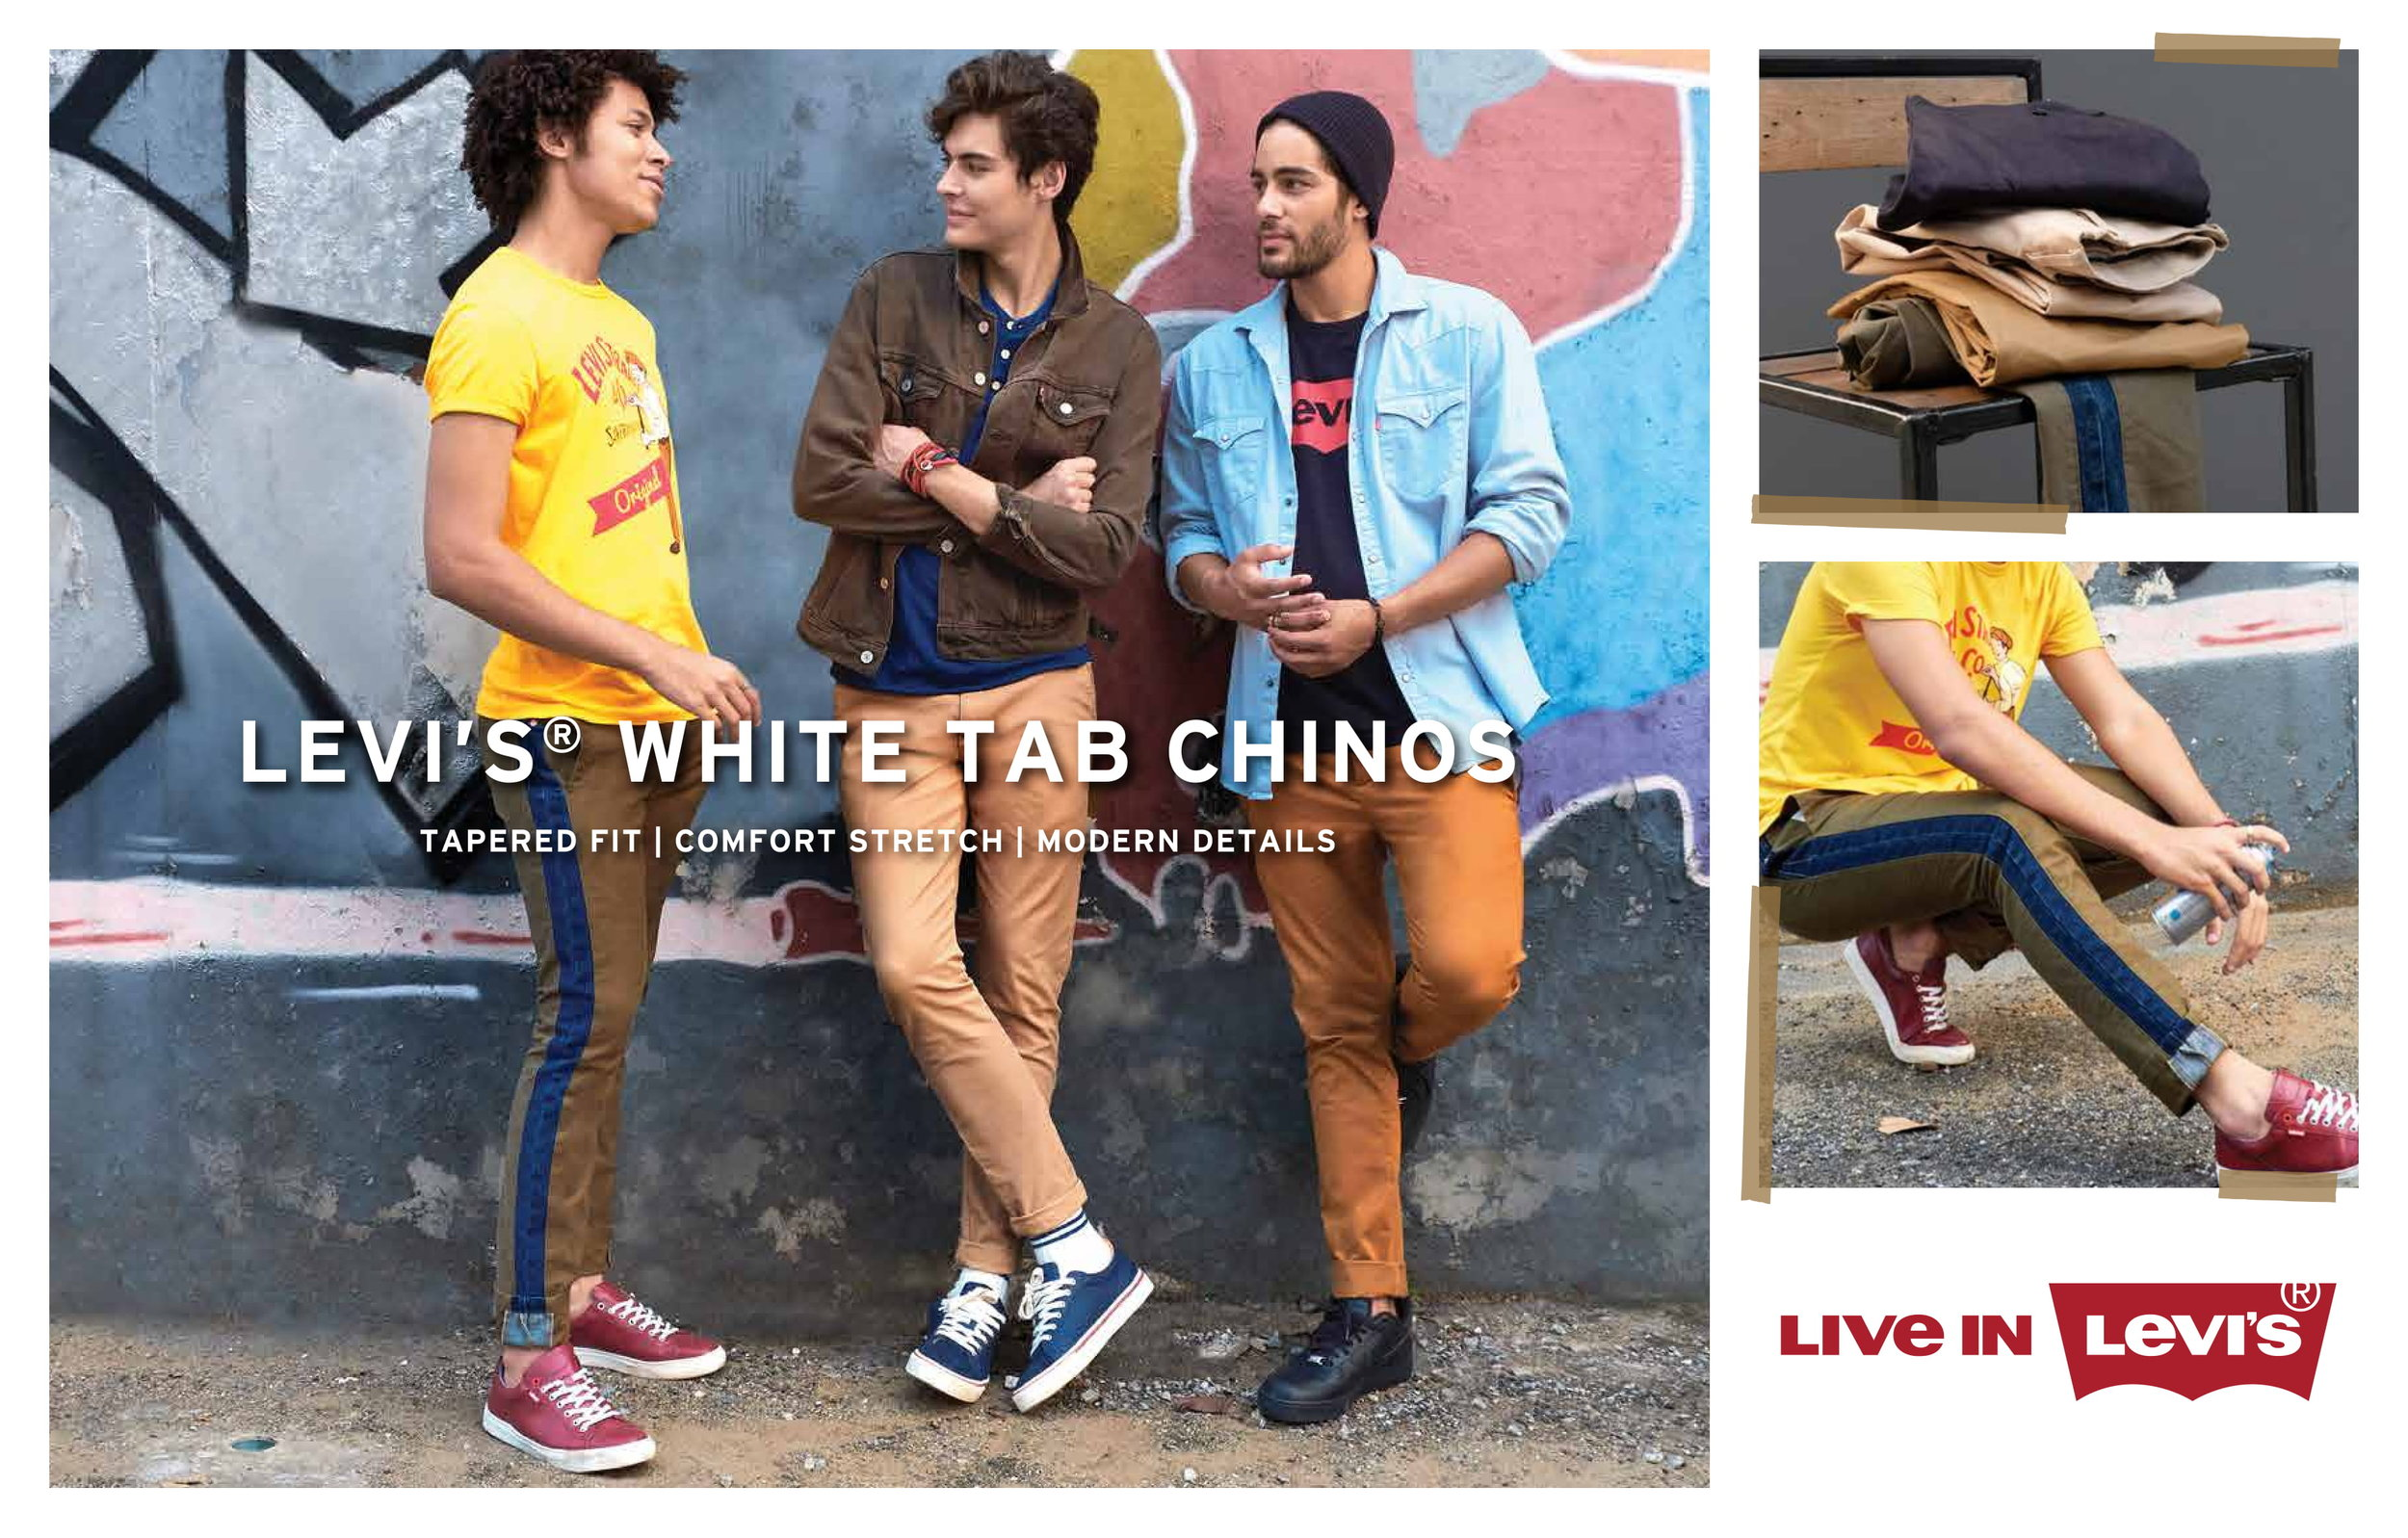 Levis+White+Tab+Print+and+Outdoor+Adapts-13.jpg